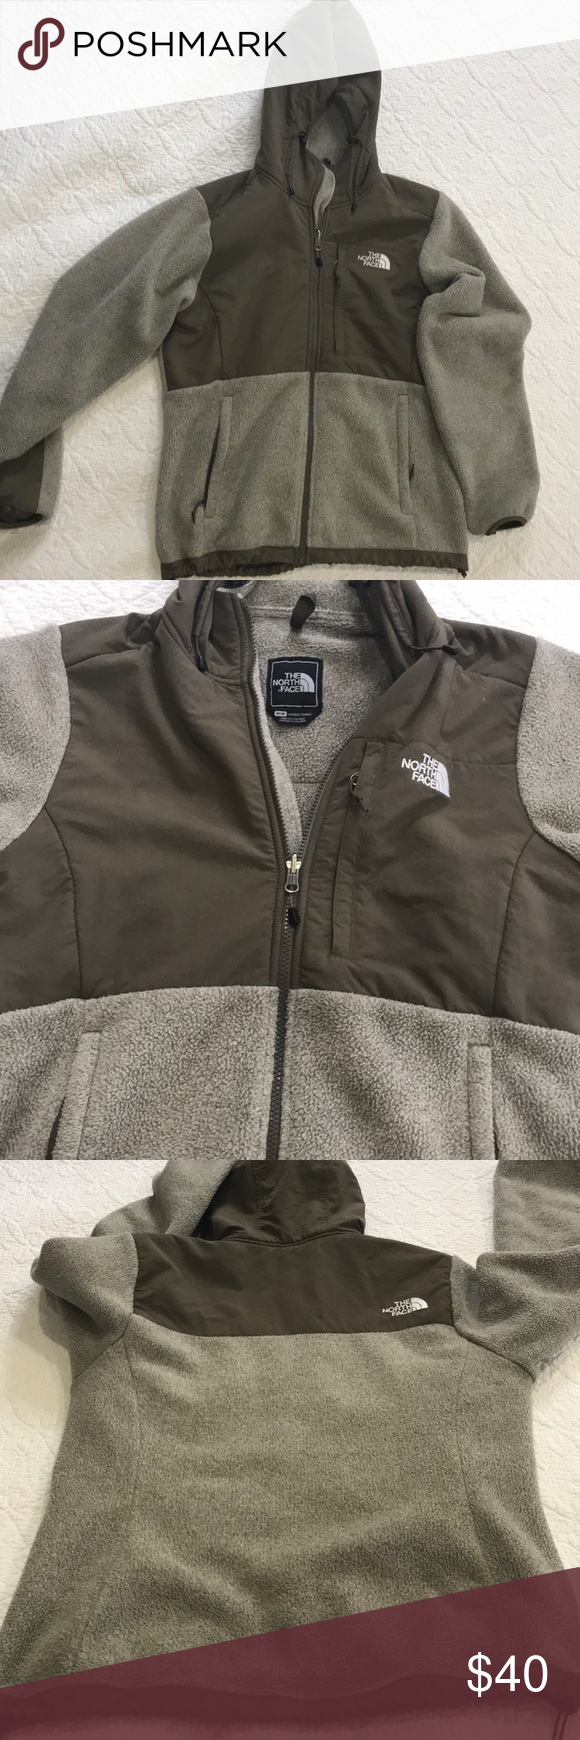 The North Face Jacket Brown Cream Color I Purchased This Jacket On Marketplace But Its A Little Bigger Than I Like It North Face Jacket The North Face Jackets [ 1740 x 580 Pixel ]